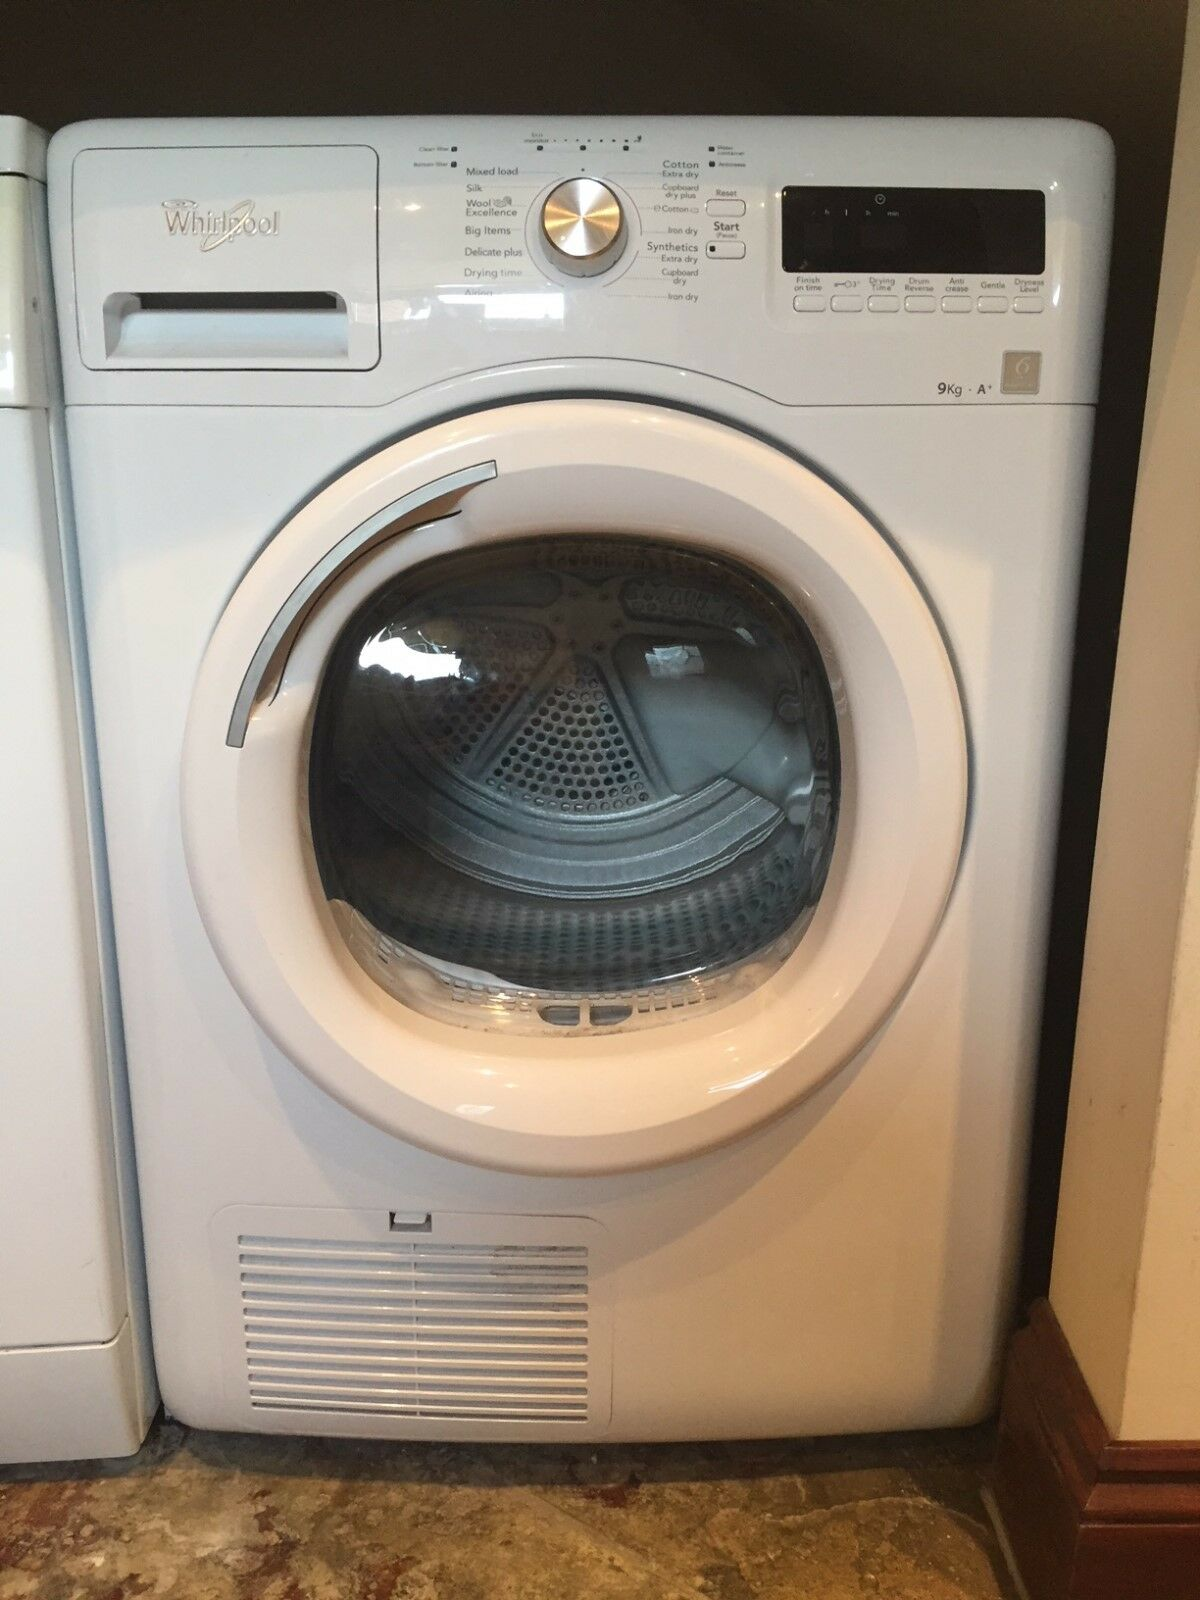 Whirlpool tumble dryer in white 8kg drum 6th sense technology condenser picclick uk - Tumble dryer for small space pict ...